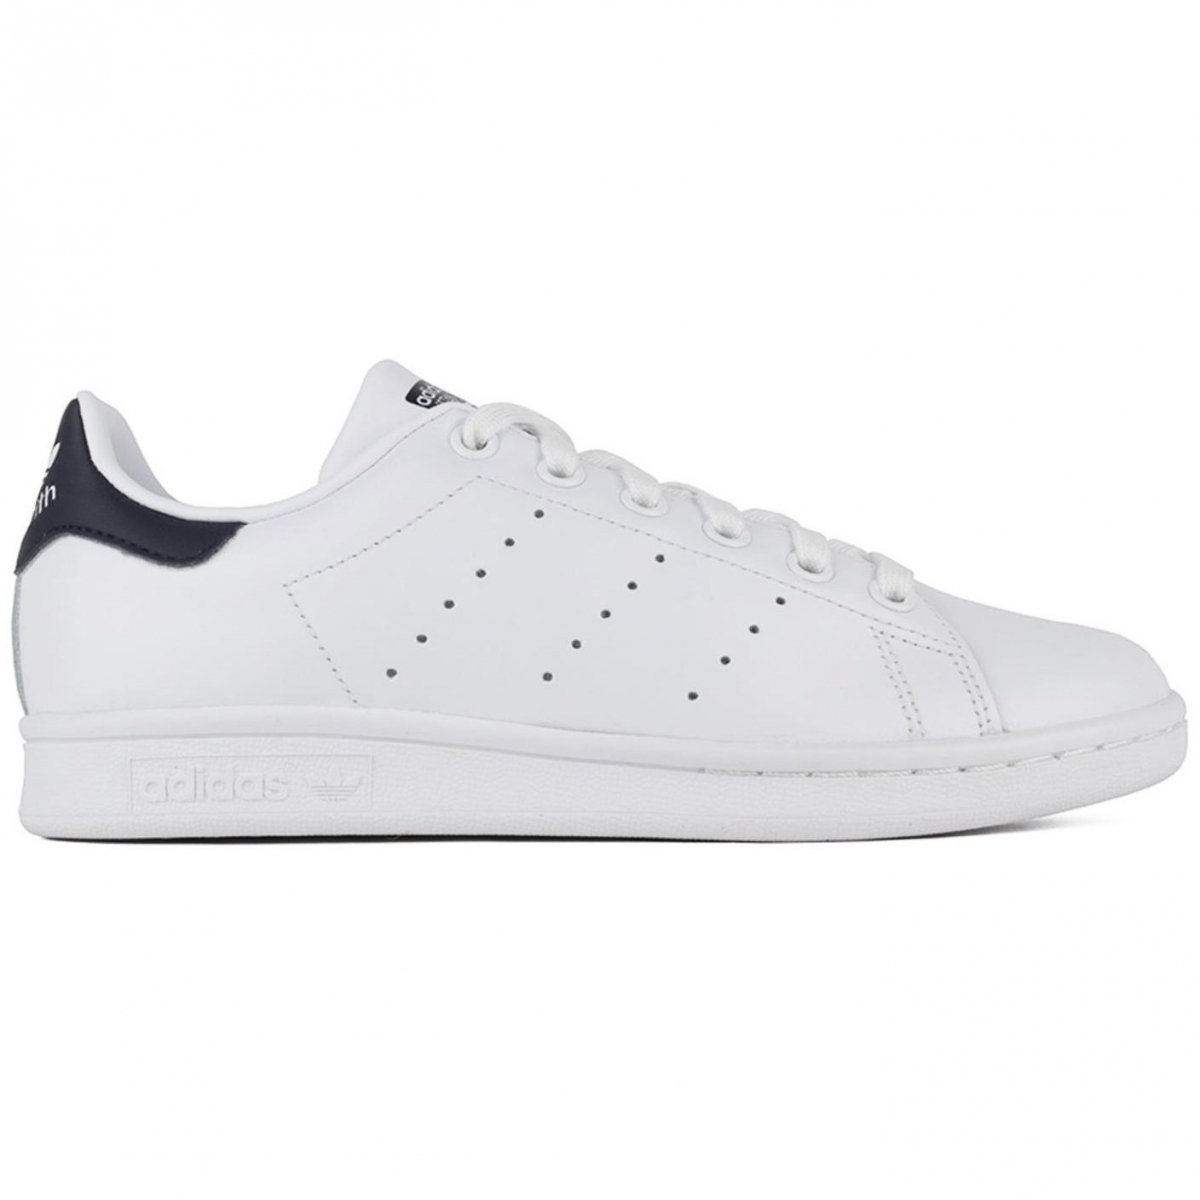 ADIDAS ORIGINALS BUTY STAN SMITH M20325